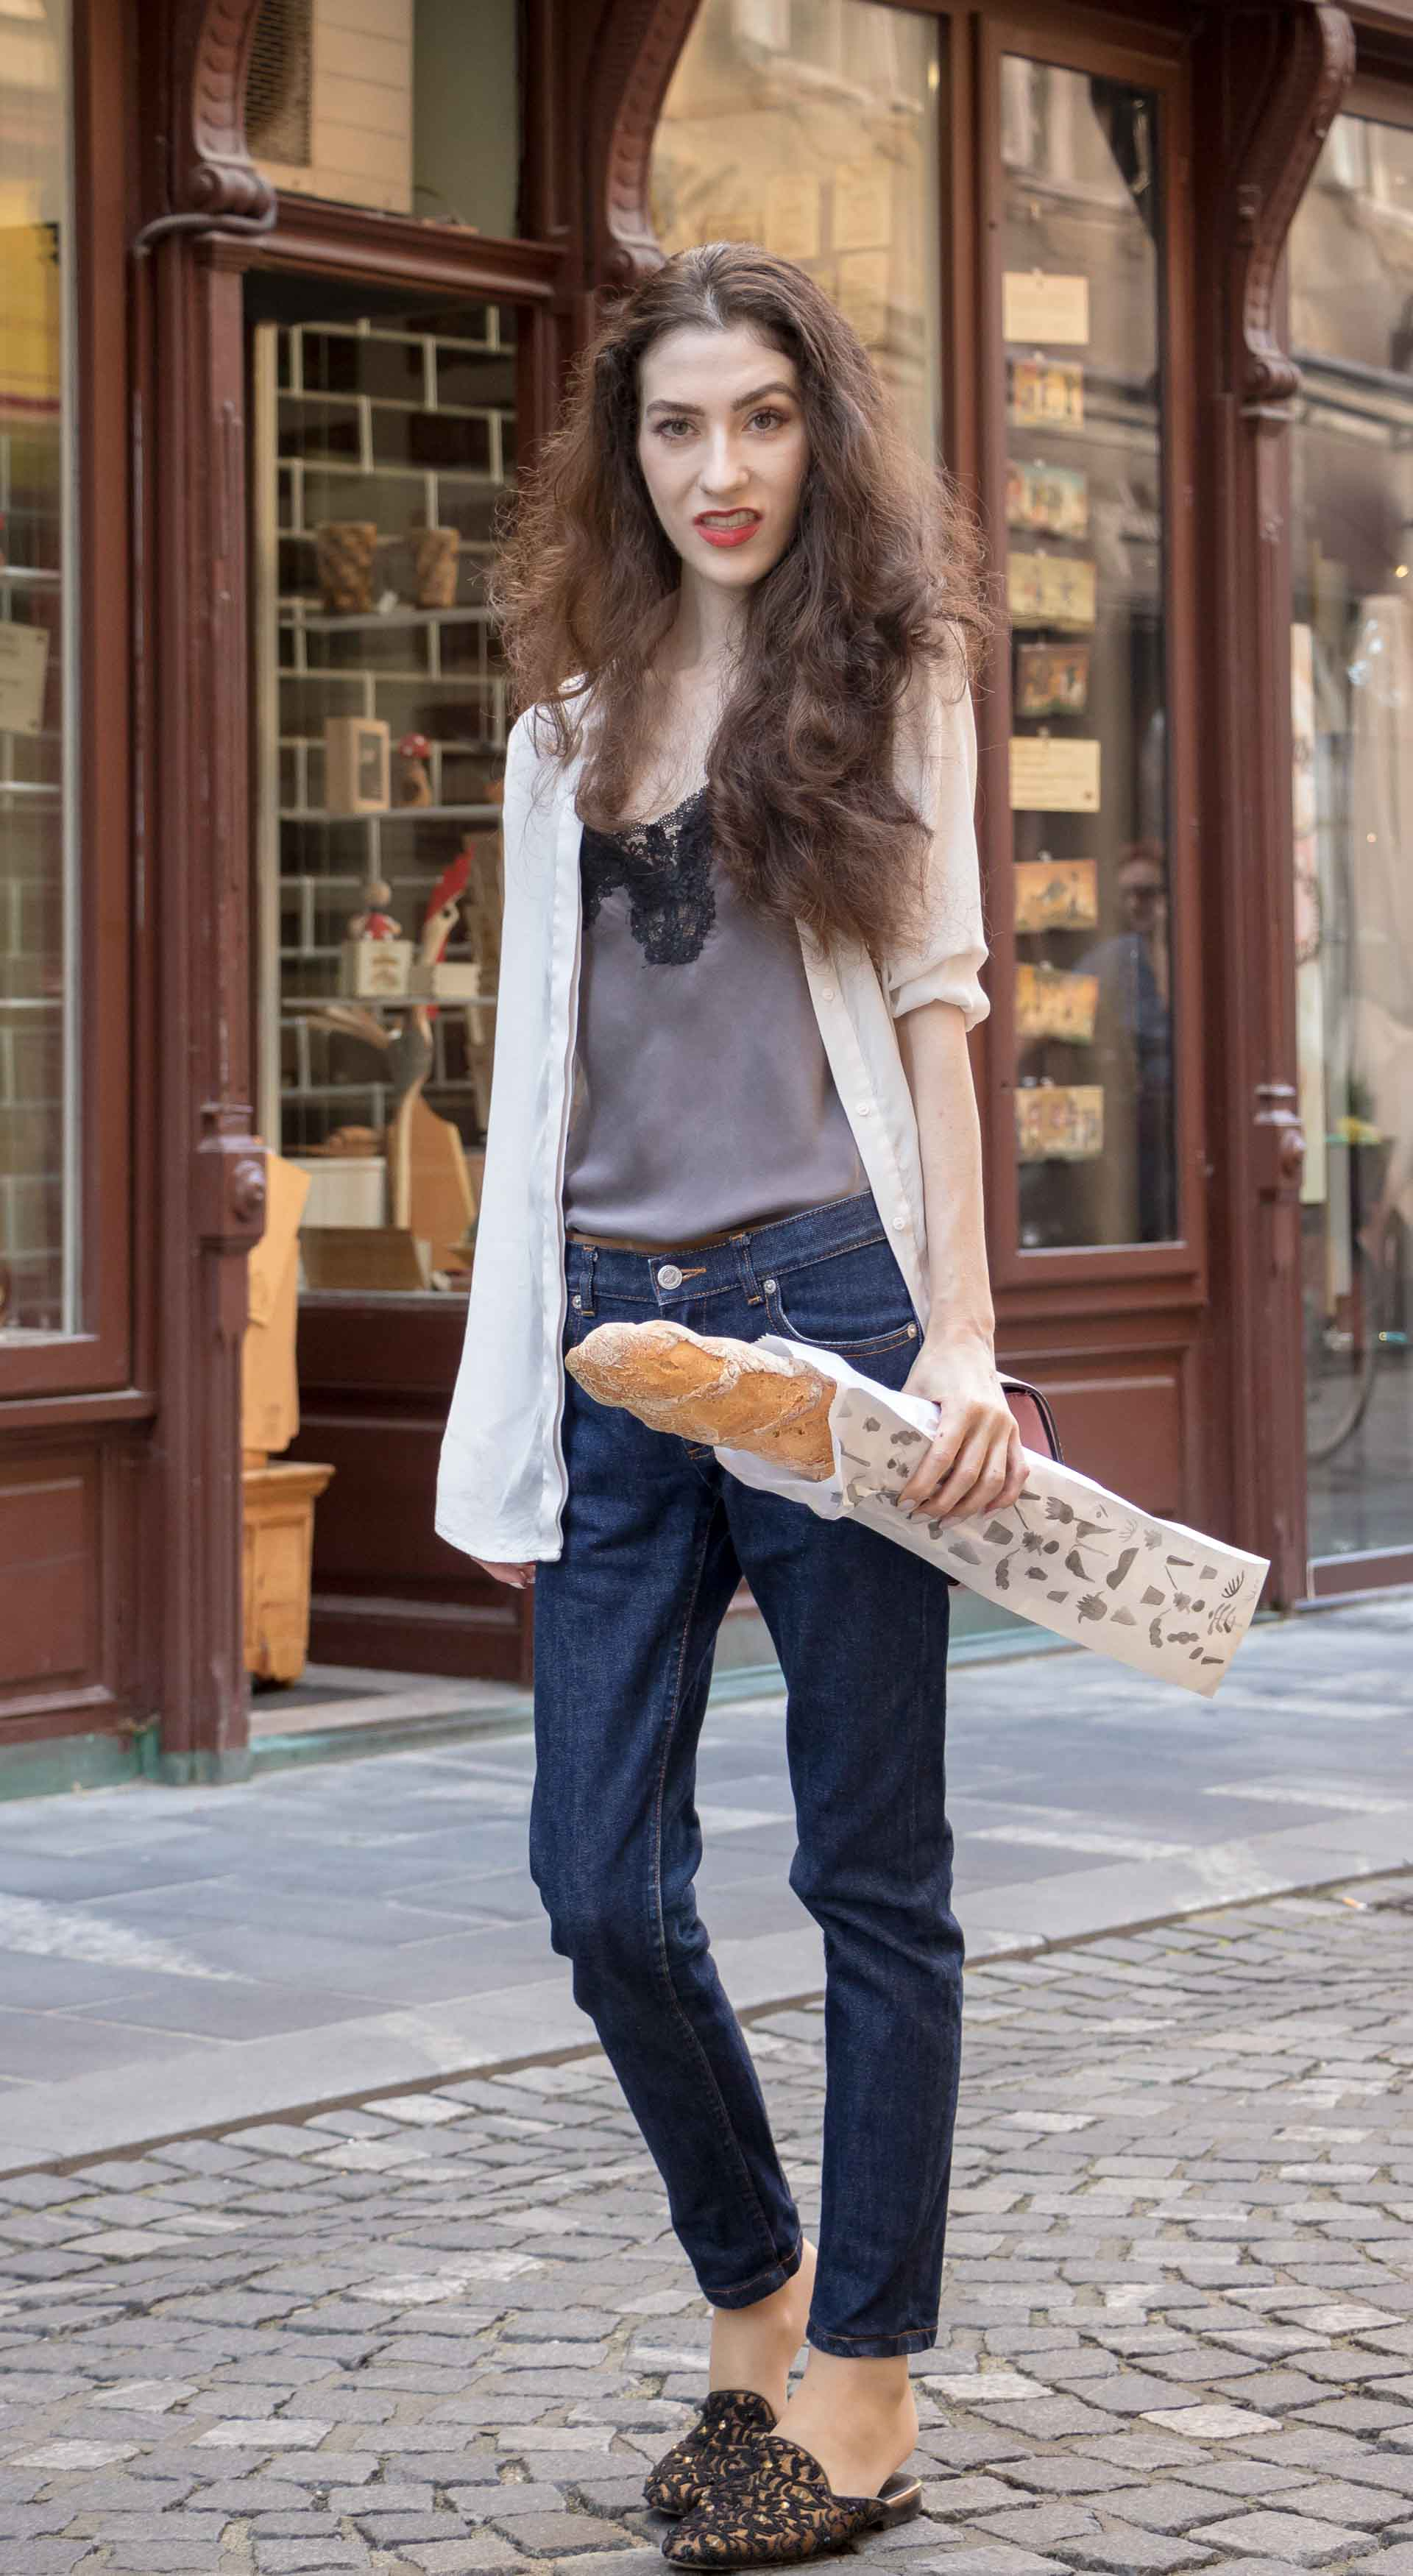 Fashion Blogger Veronika Lipar of Brunette from Wall Street dressed in white sheer shirt with transparent back from Sandro Paris, grey silk slip top, A.P.C. dark denim jeans, mules, pink Furla shoulder bag, on her way from the bakery